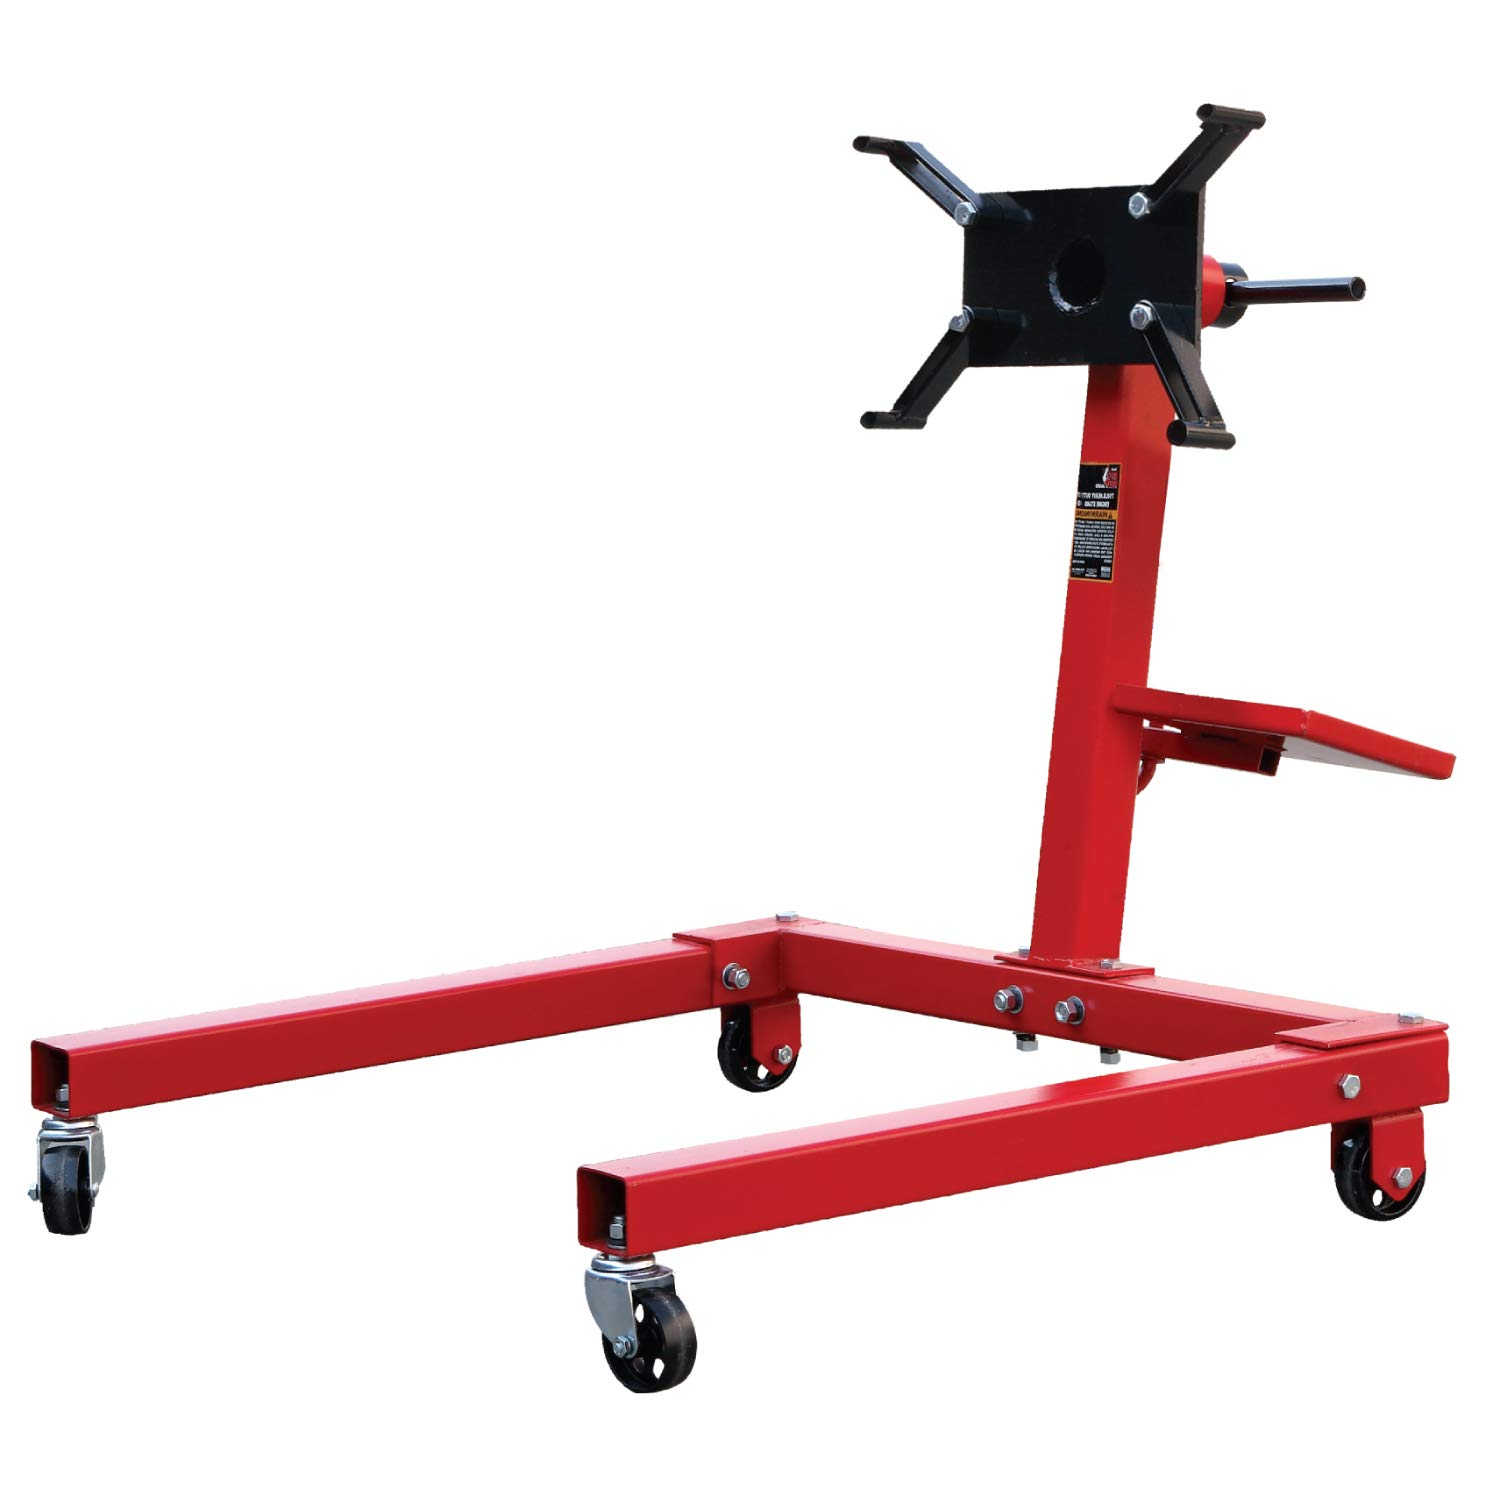 Torin Big Red Steel Rotating Engine Stand: 1,250 lb Capacity by Torin